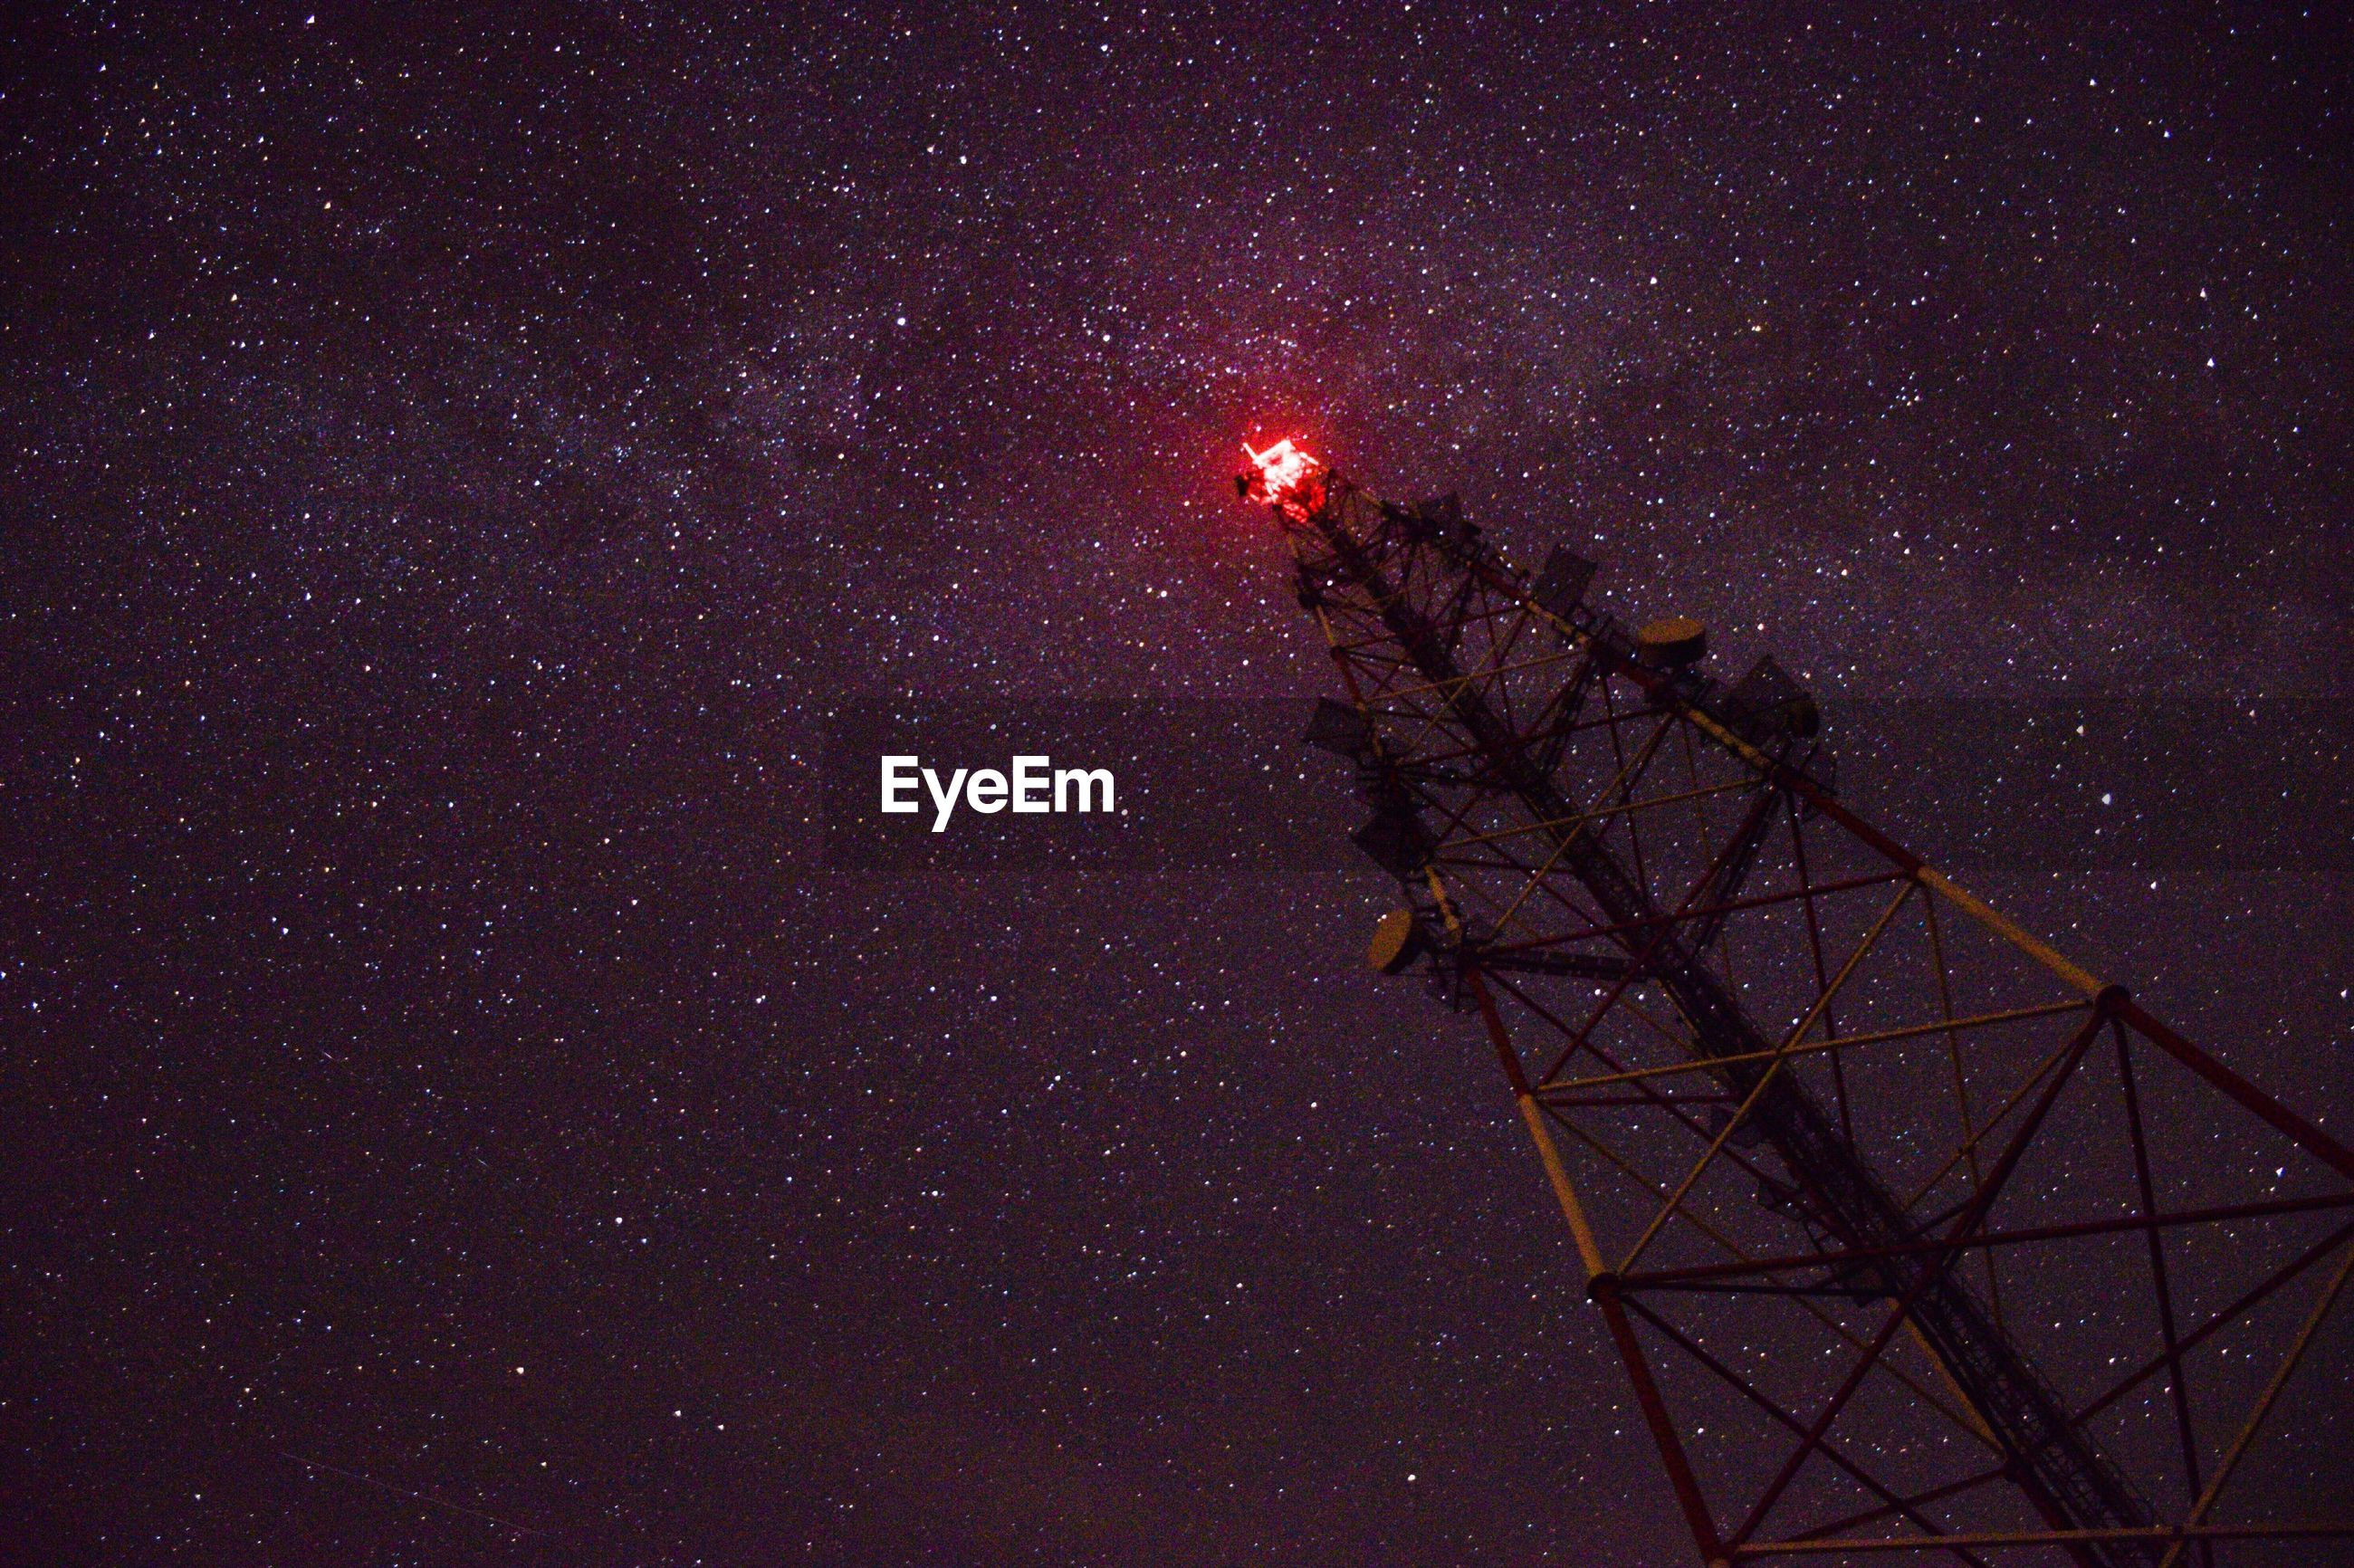 Low angle view of communications tower against sky at night